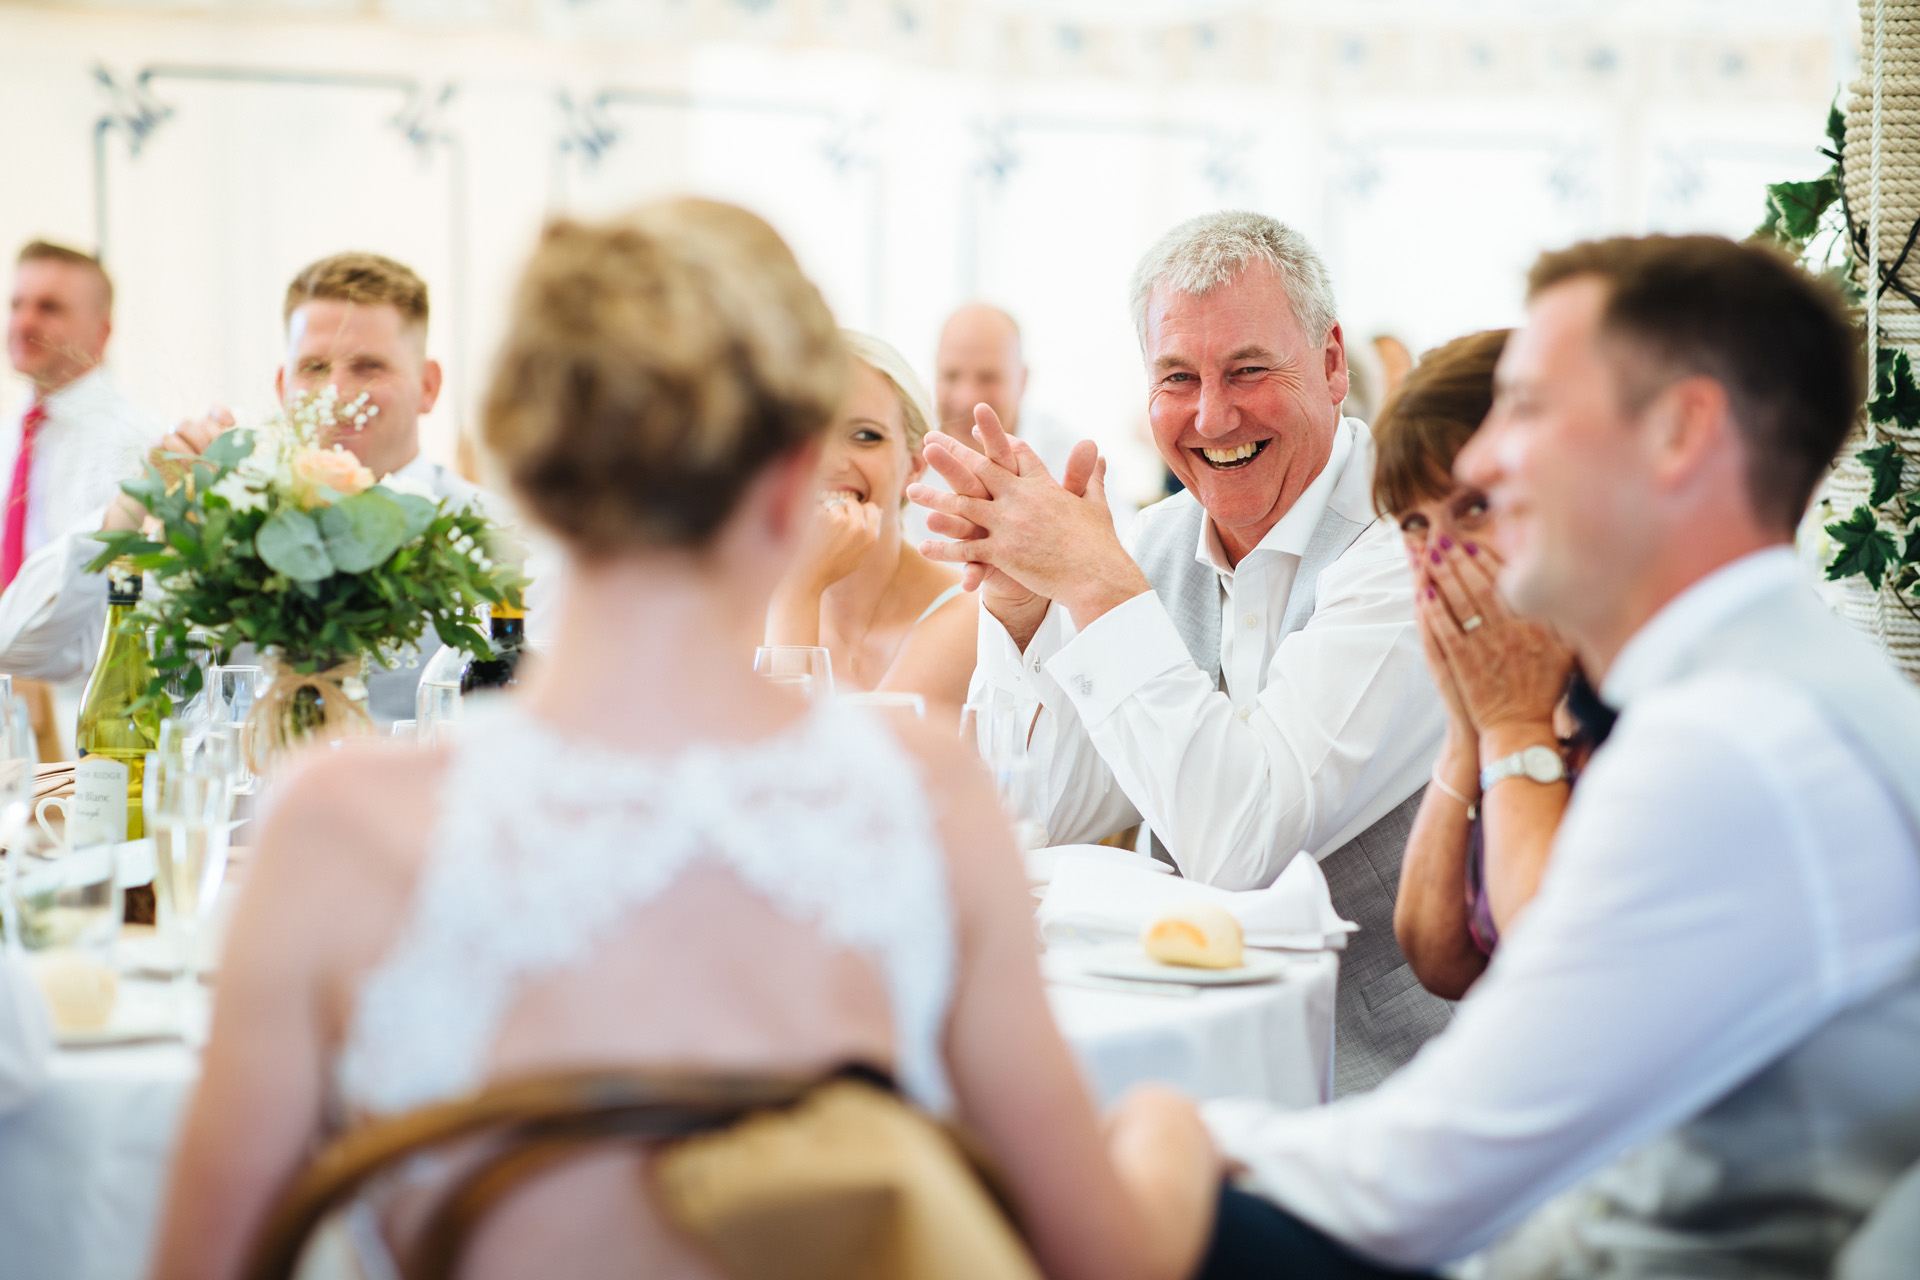 grooms dad laughing at the bride during the speeches